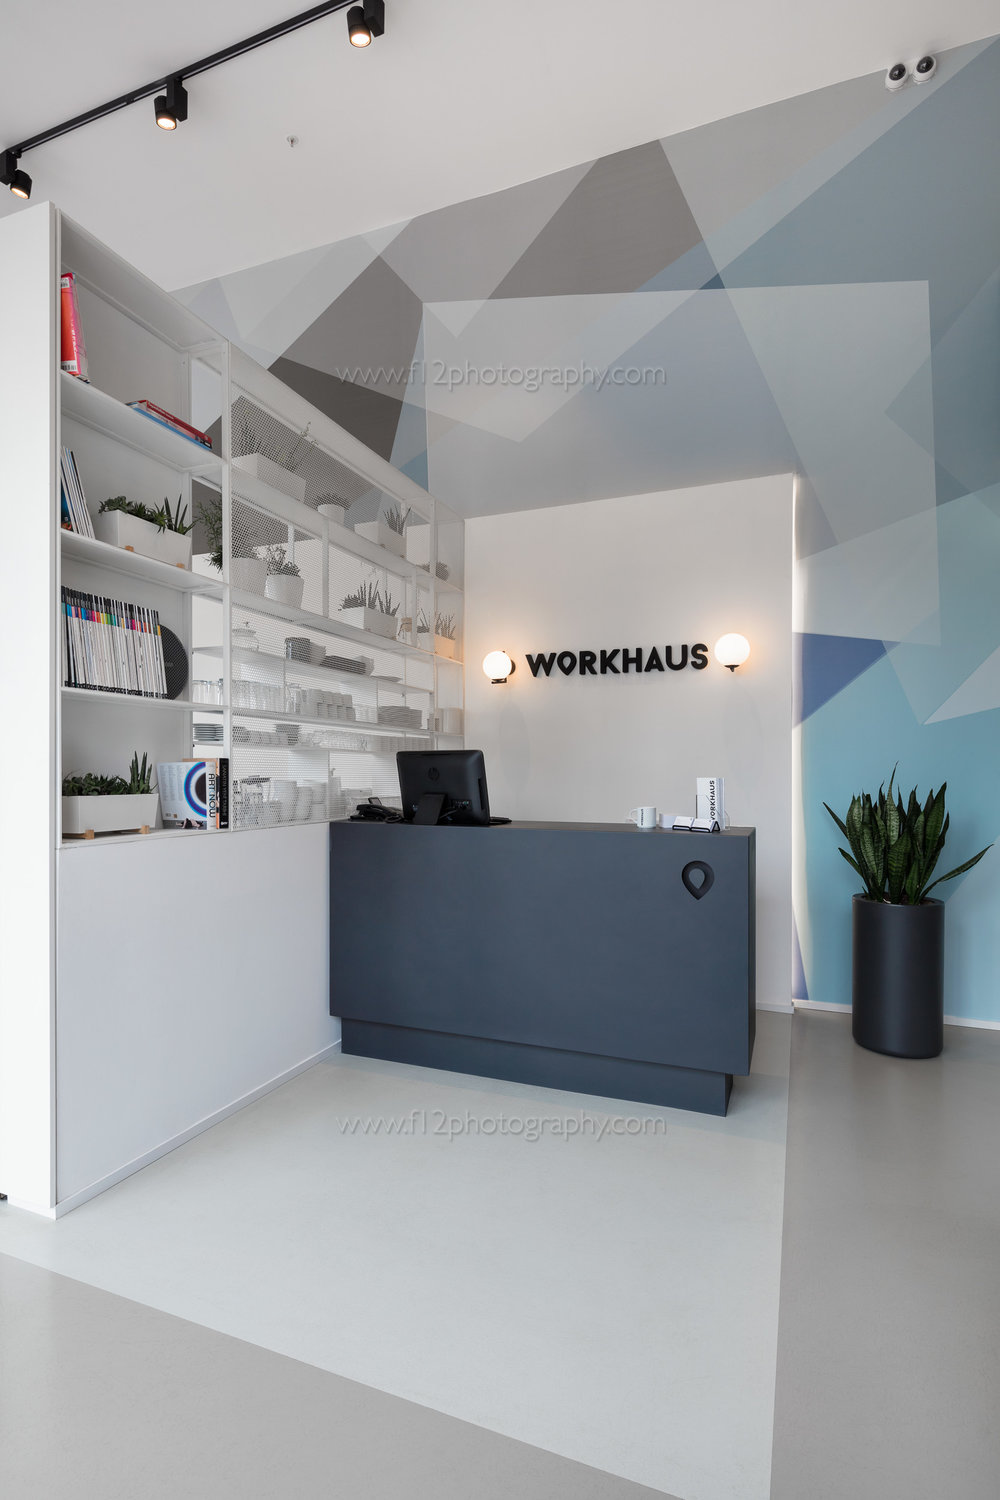 f12-Workhaus-03.jpg